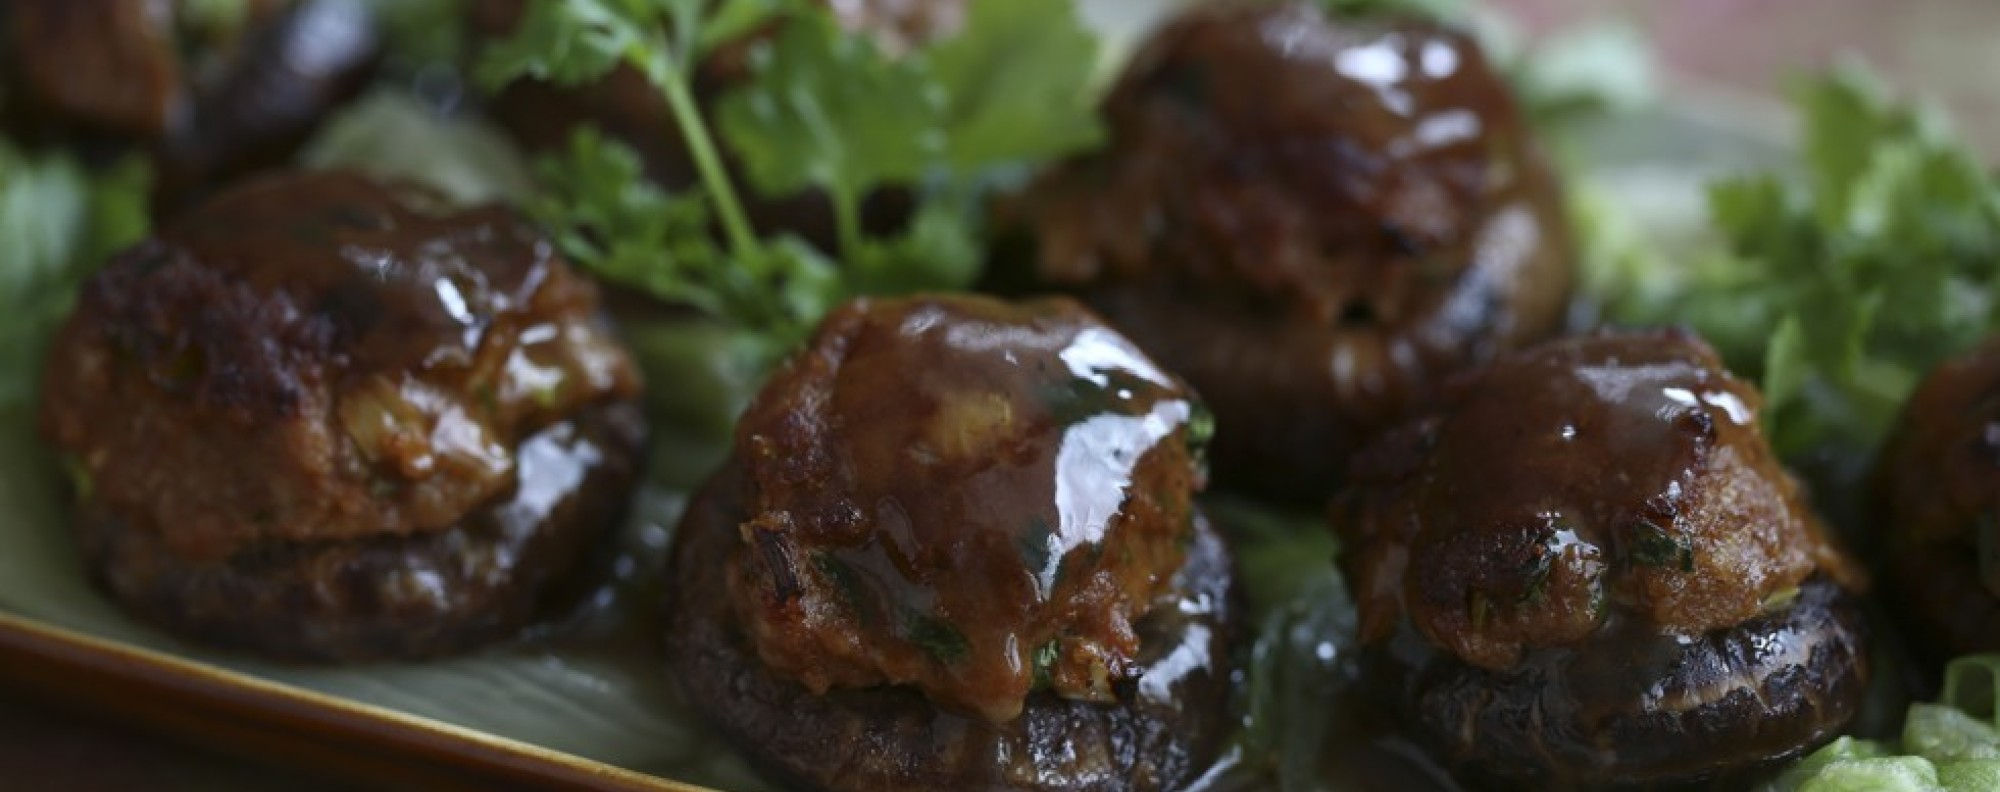 Stuffed Chinese mushrooms by Susan Jung.